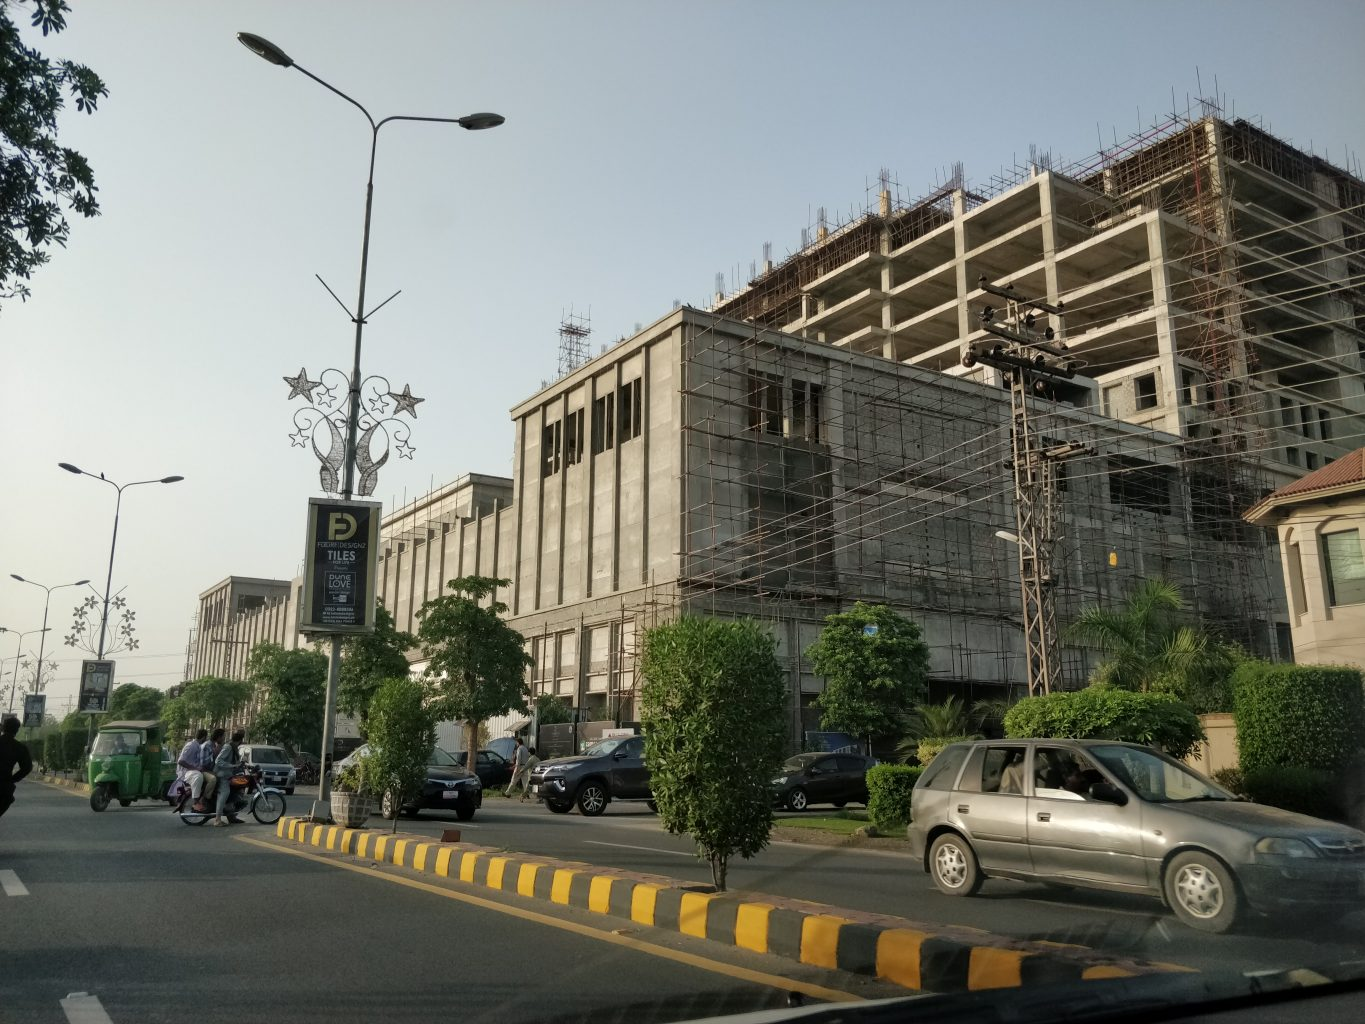 DHA Lahore: Beyond the Beautiful Facade | Charcoal + Gravel